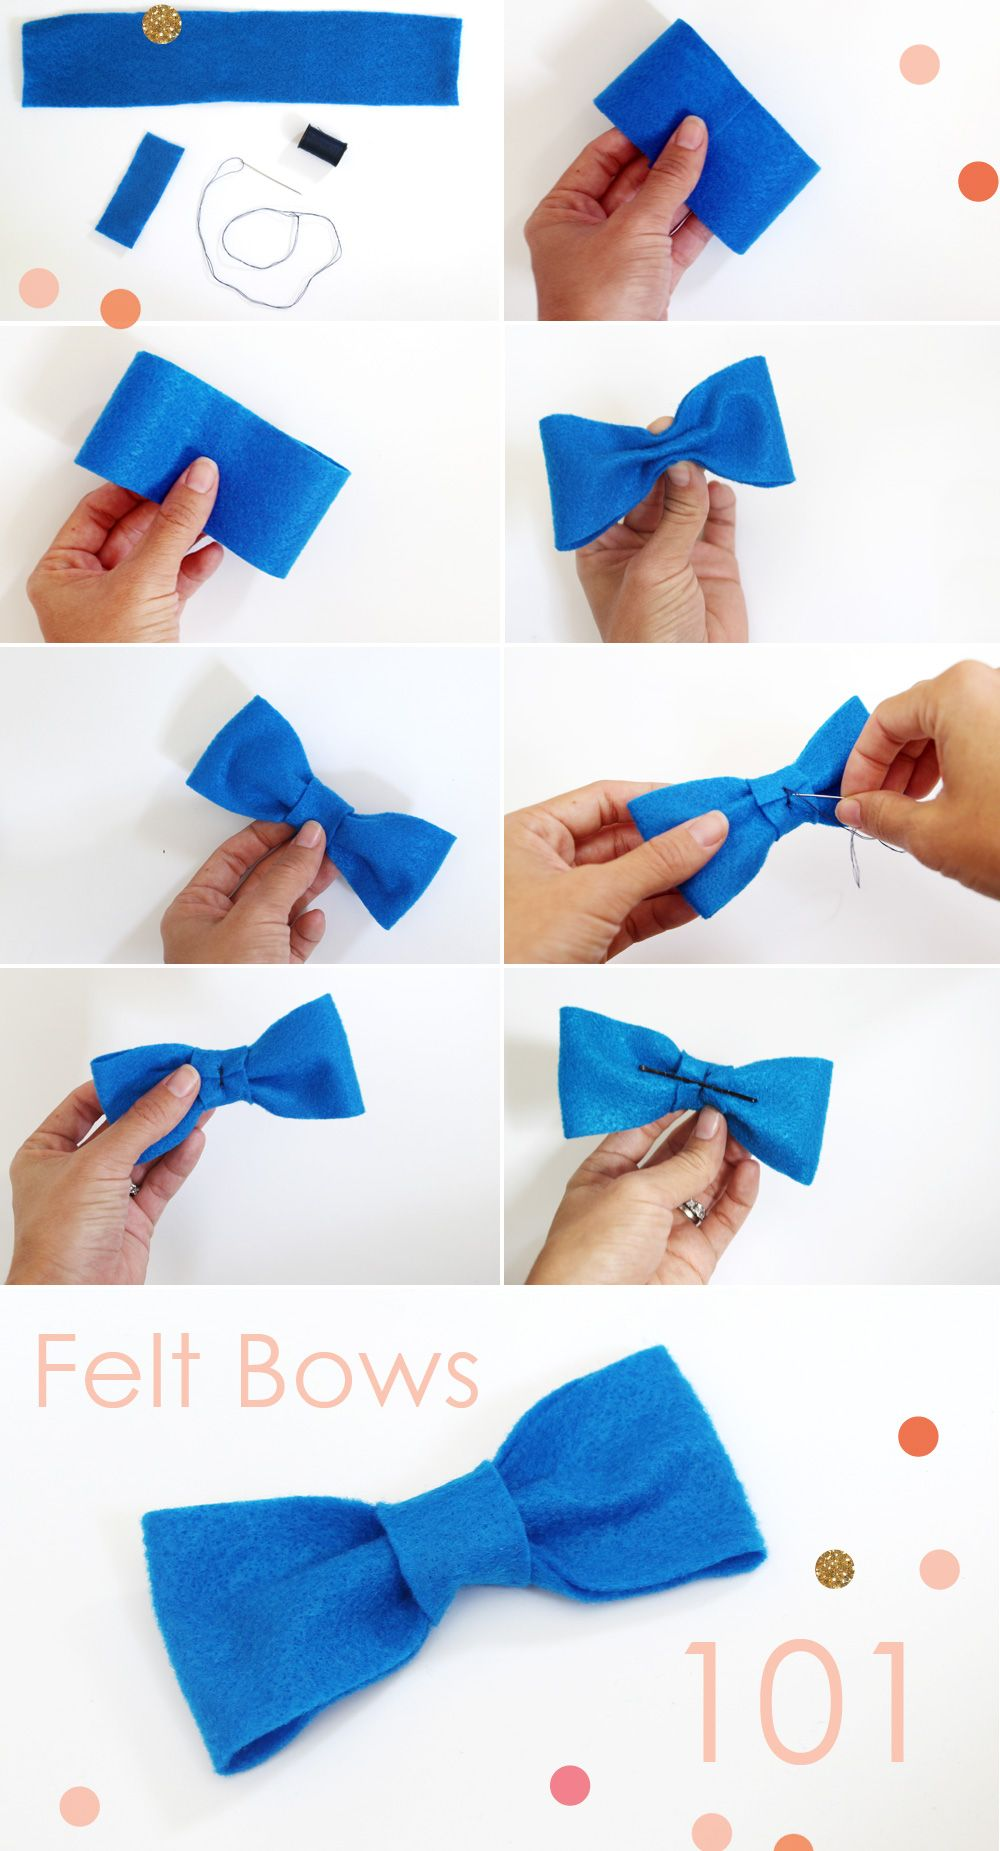 felt bow tie template - diy felt bow instructions perfect for mary poppins